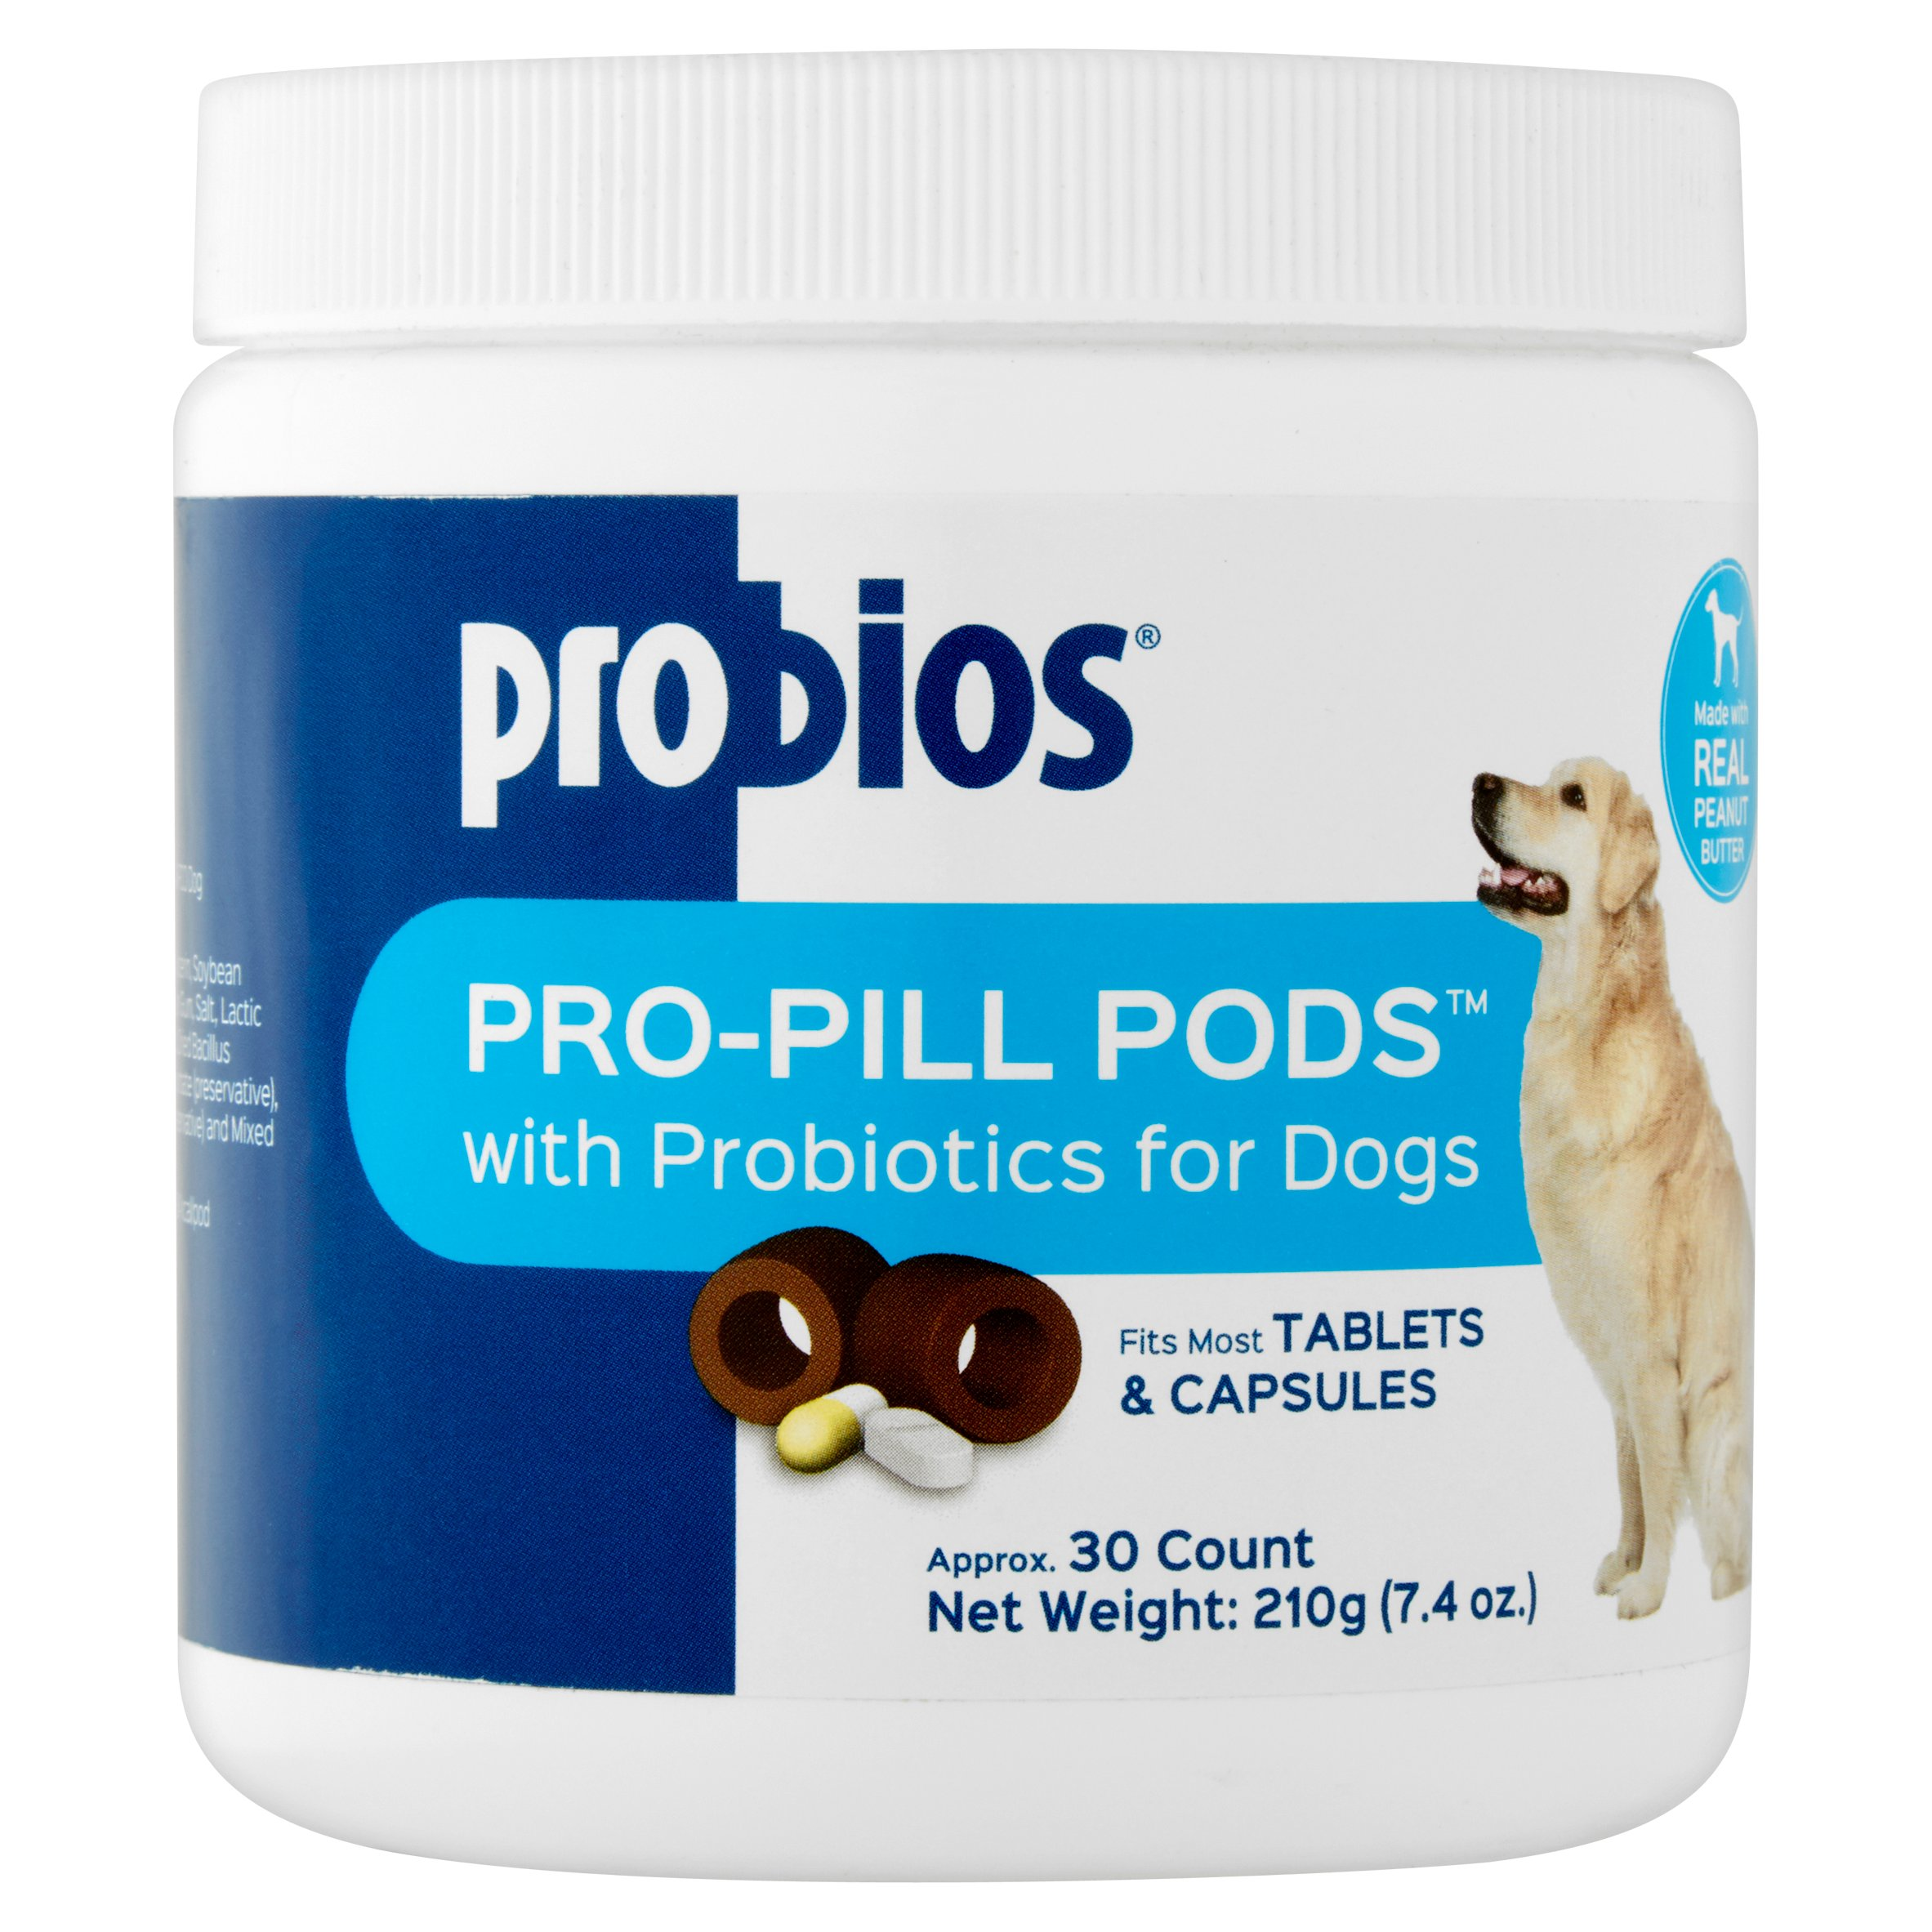 Probios Pro-Pill Pods Tablets & Capsules with Probiotics for Dogs, 30 count, 7.4 oz